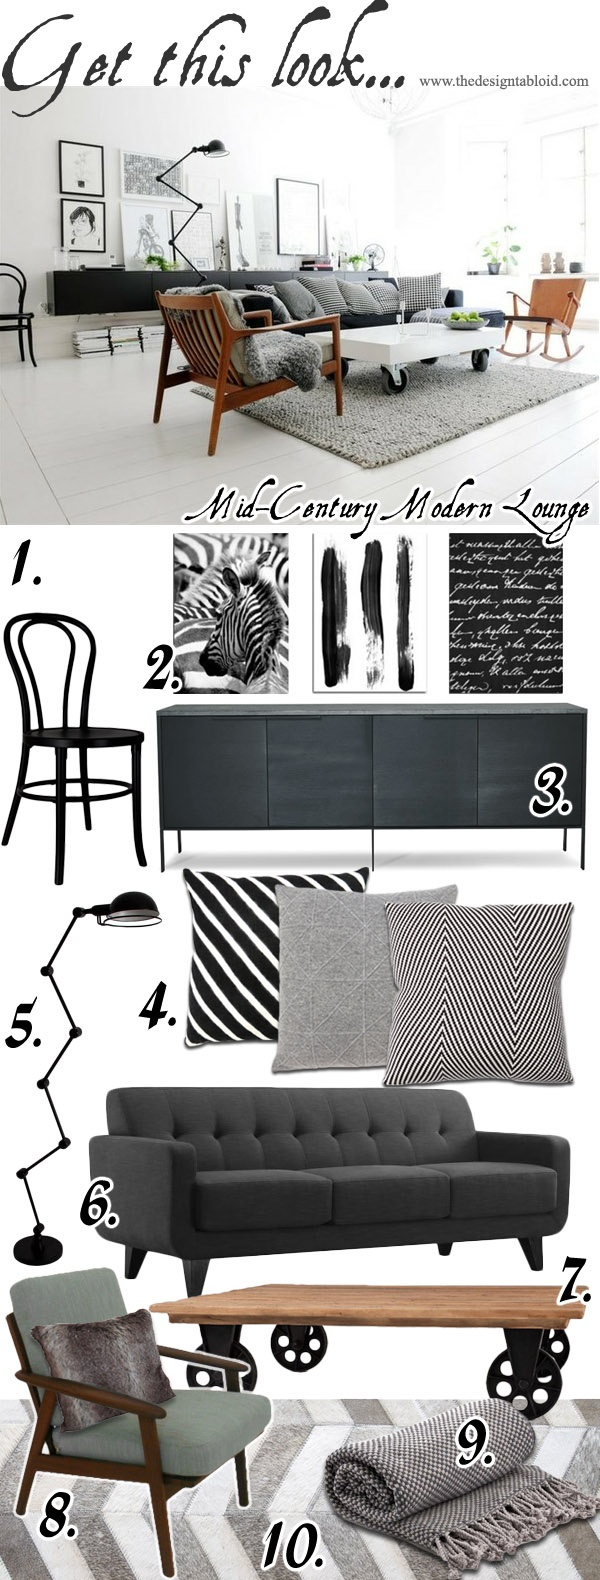 Get The Look - Mid - Century Modern Lounge - The Design Tabloid